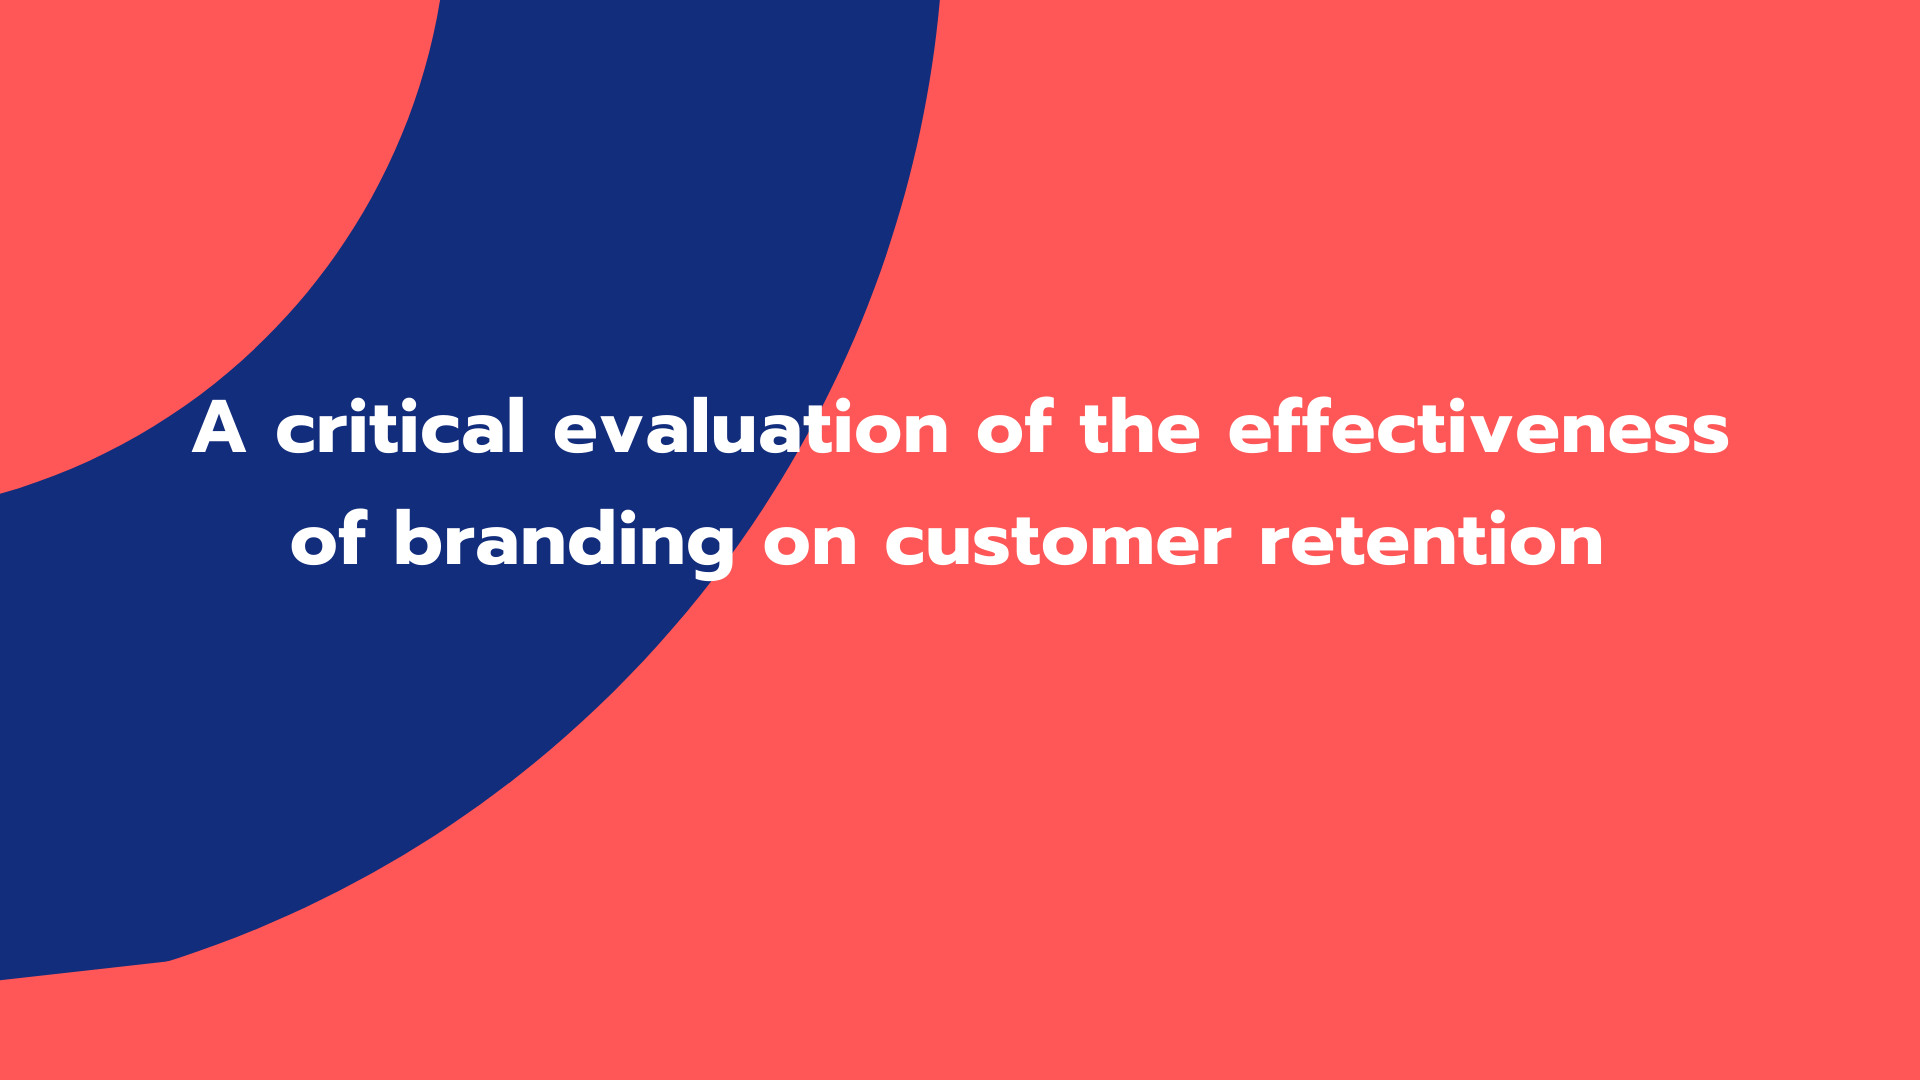 A critical evaluation of the effectiveness of branding on customer retention